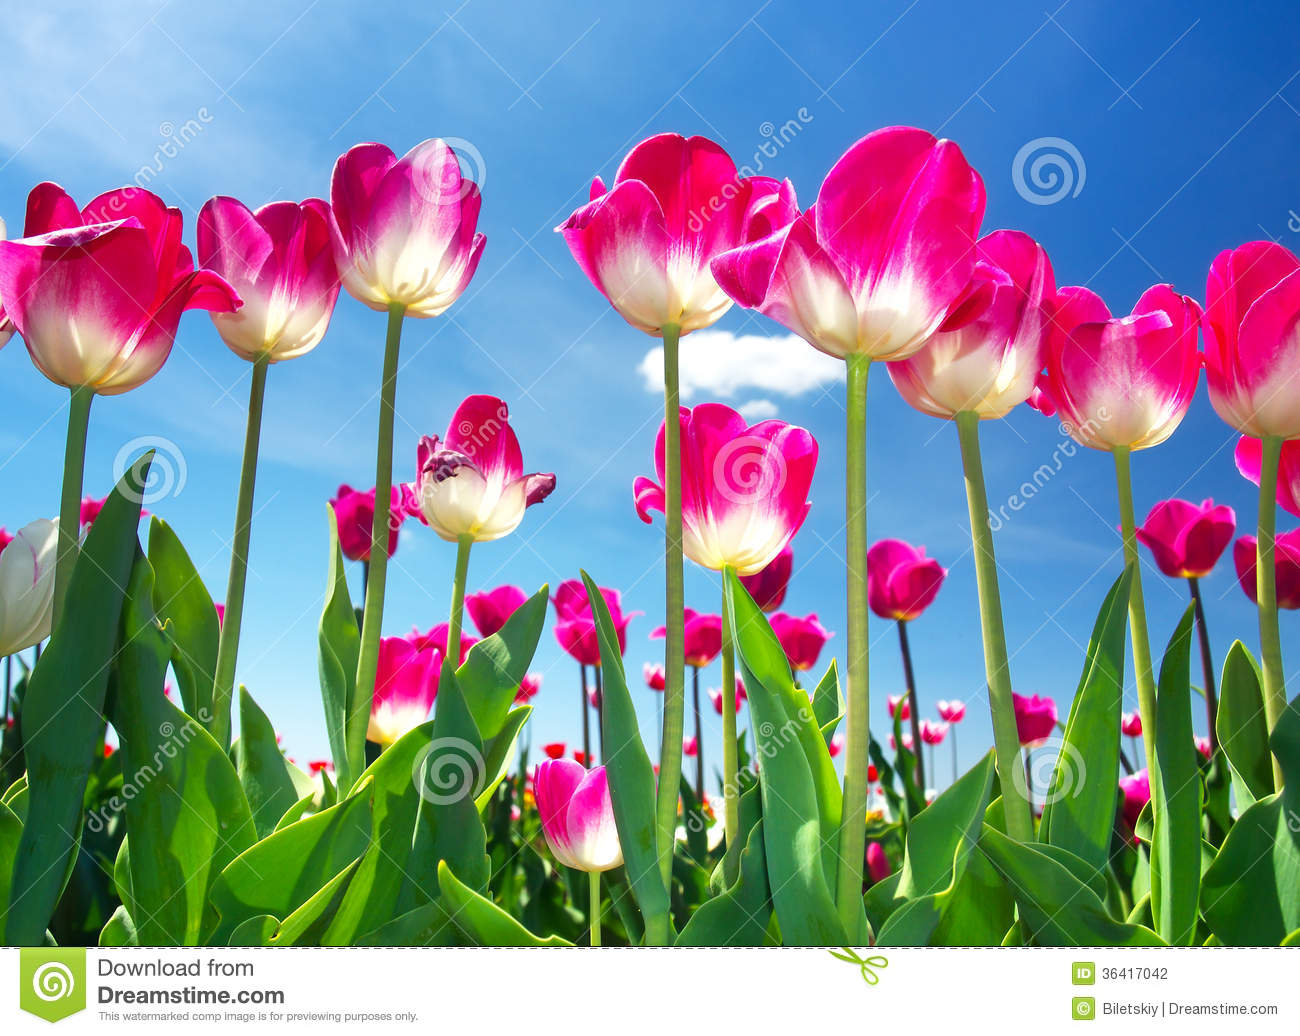 Flowers Concept Stock Photo Image Of Beauty Decoration